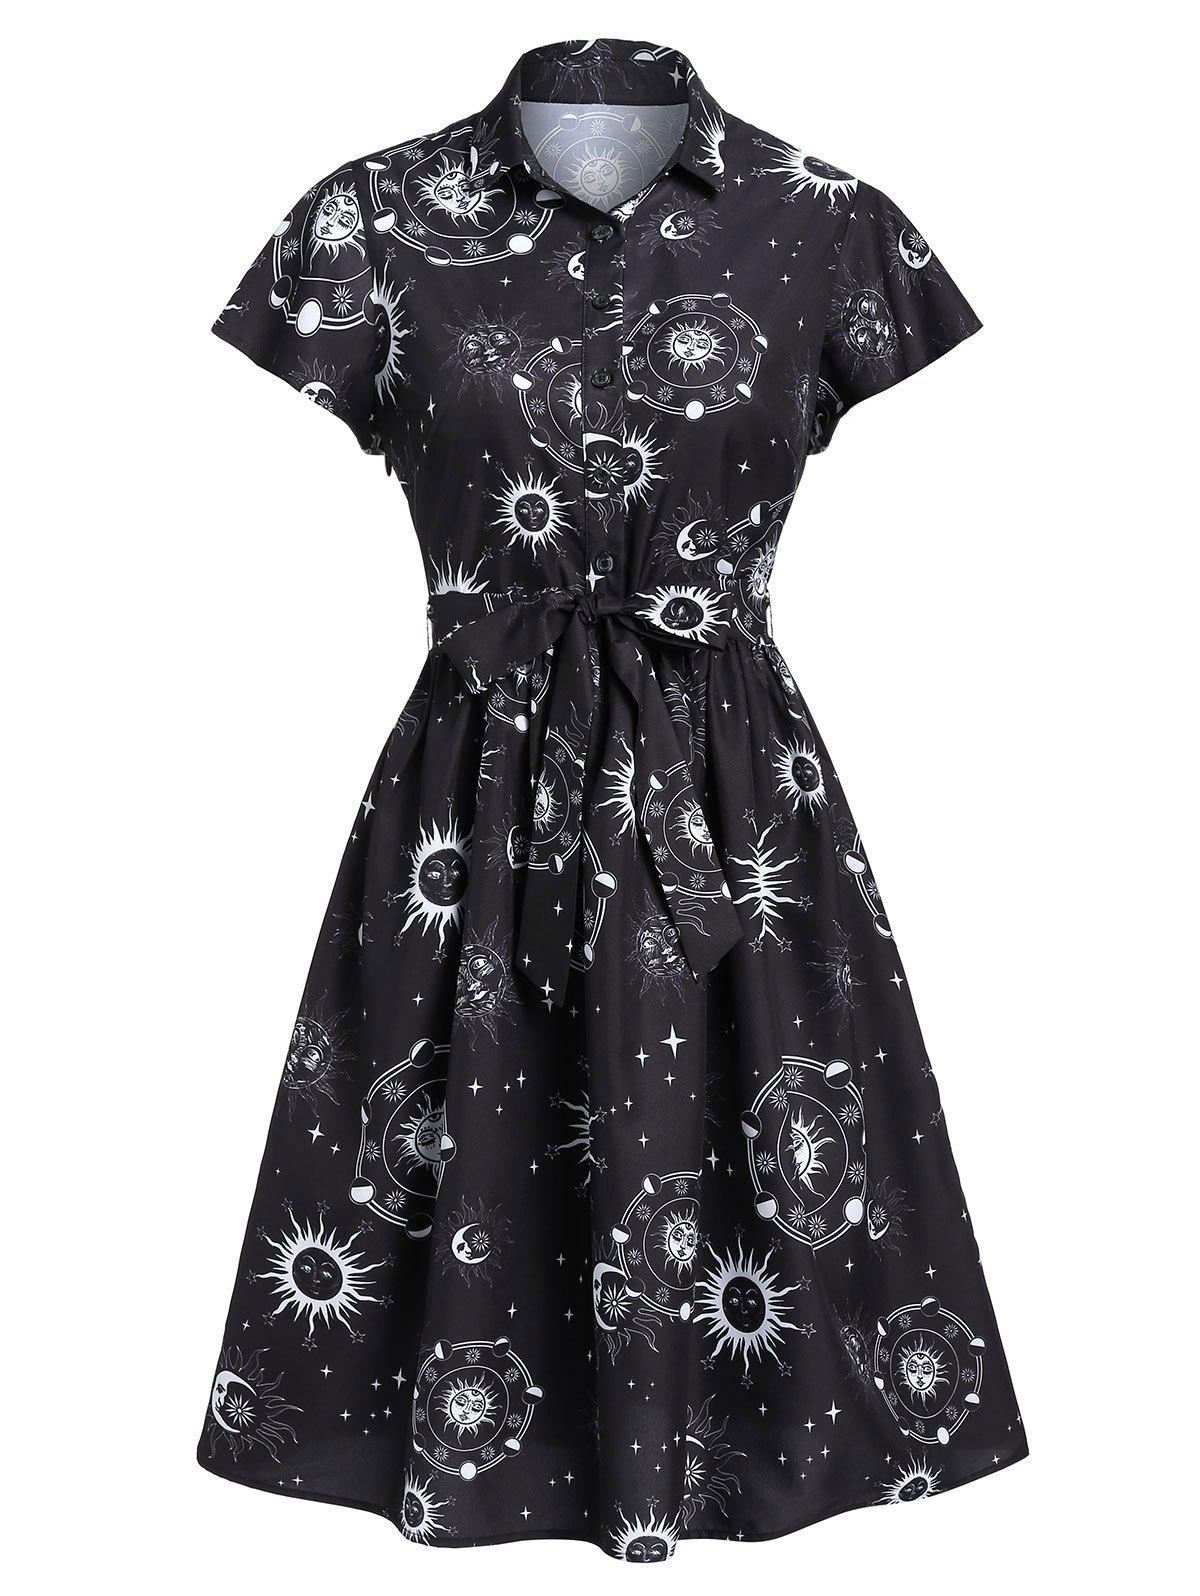 Sun Moon and Star Print Belted Button Dress - WHITE S